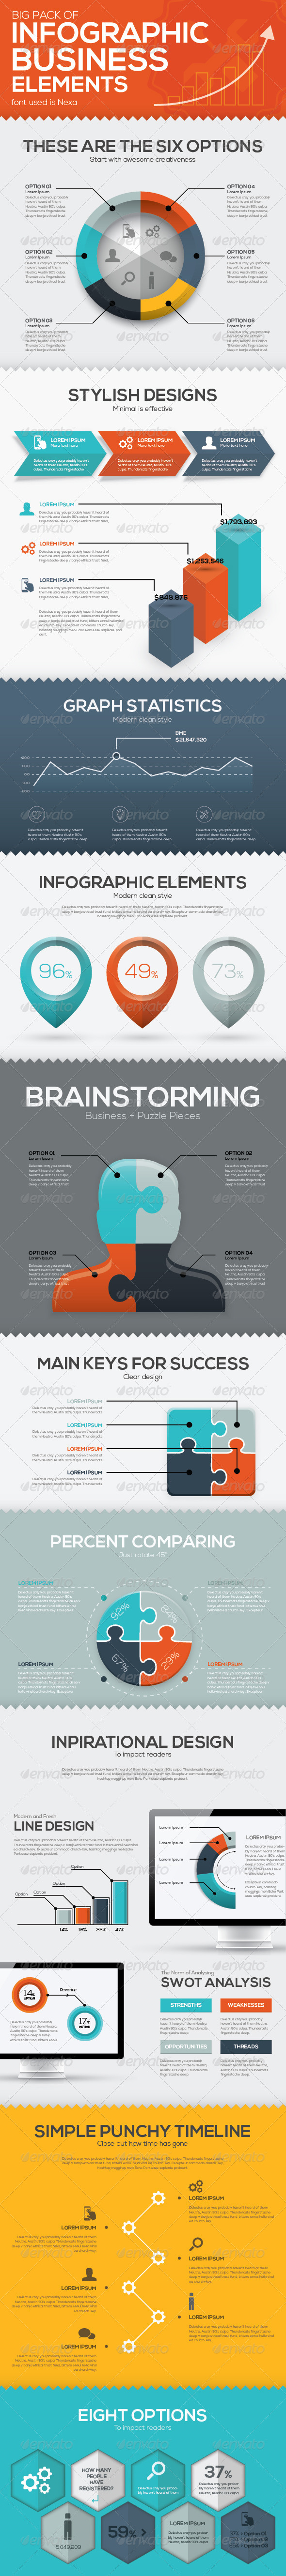 GraphicRiver Infographic Business Vector Elements 8658183